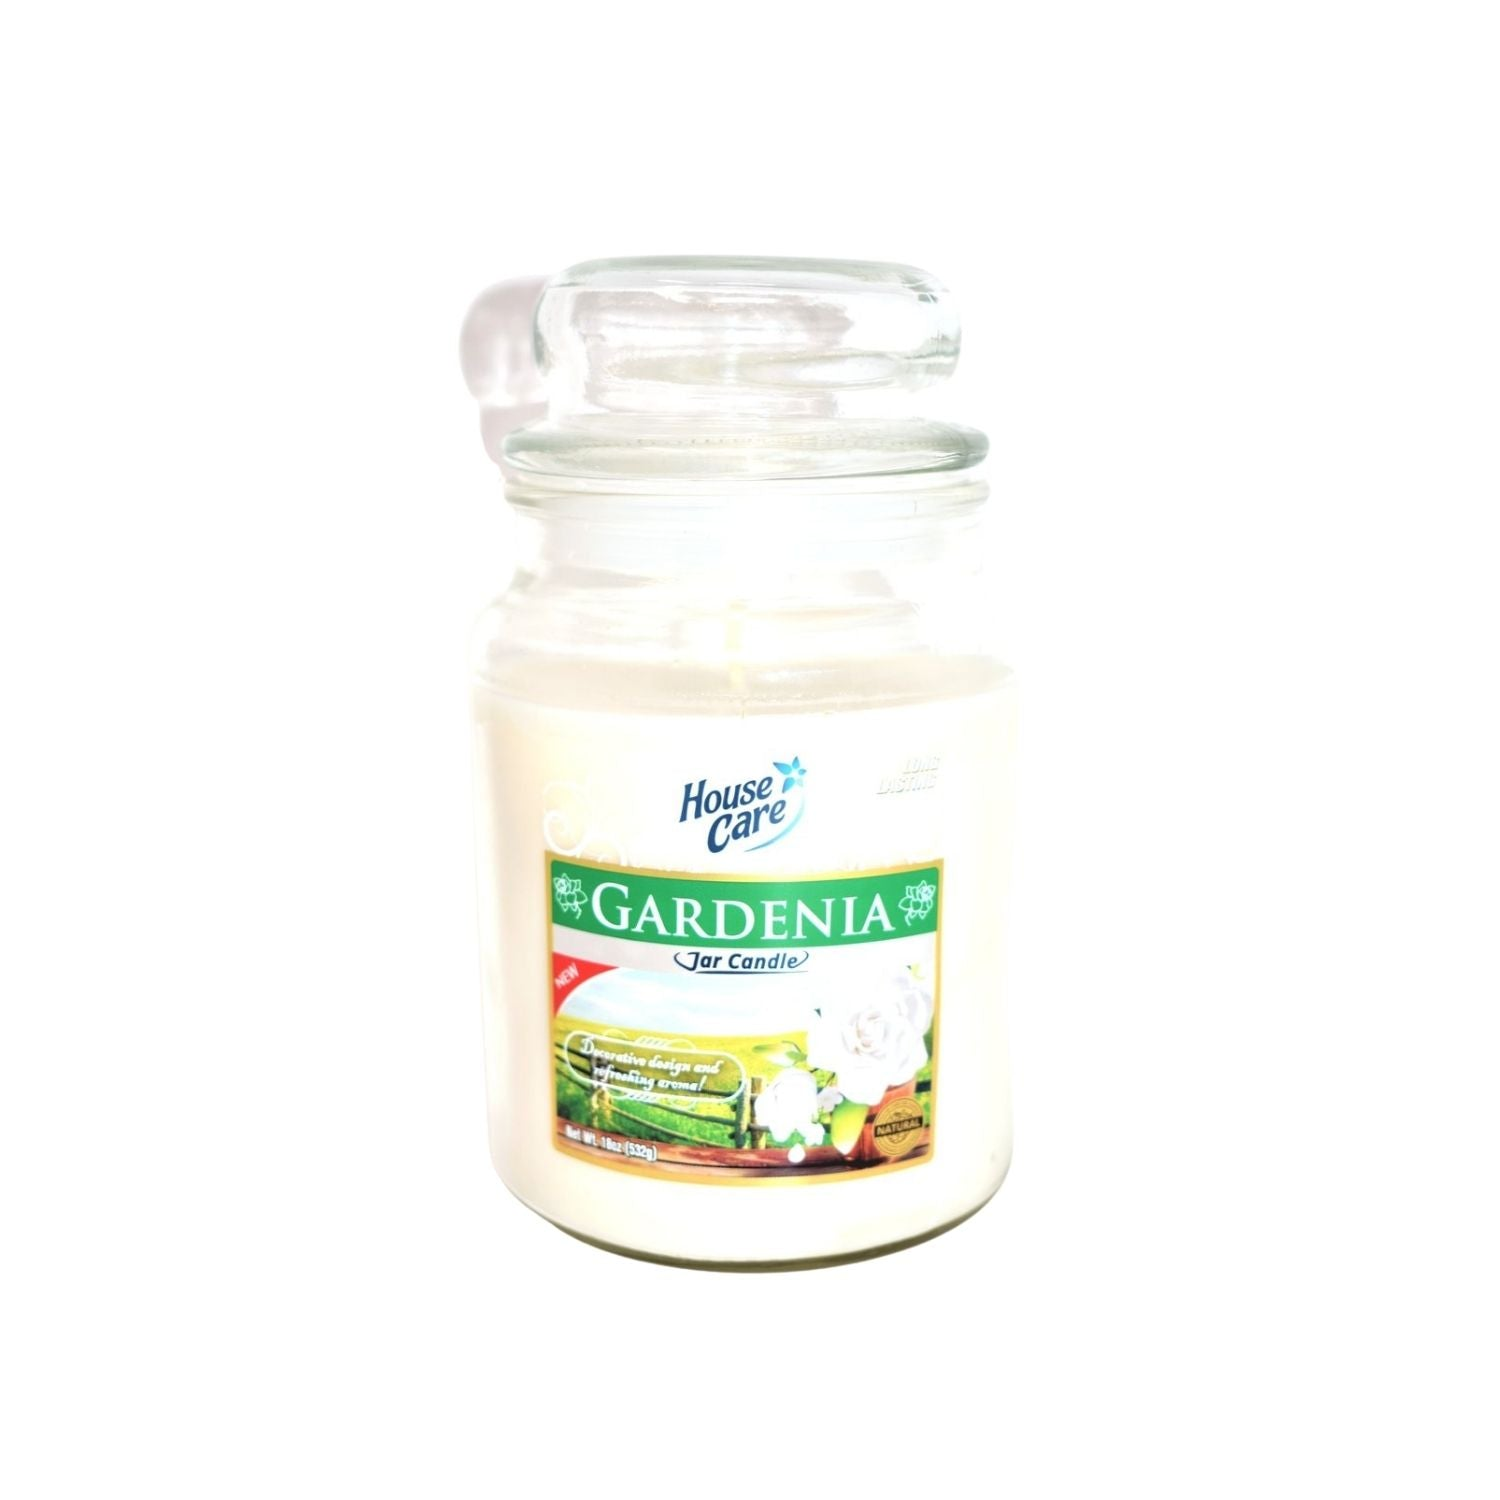 House Care Gardenia Jar Candle